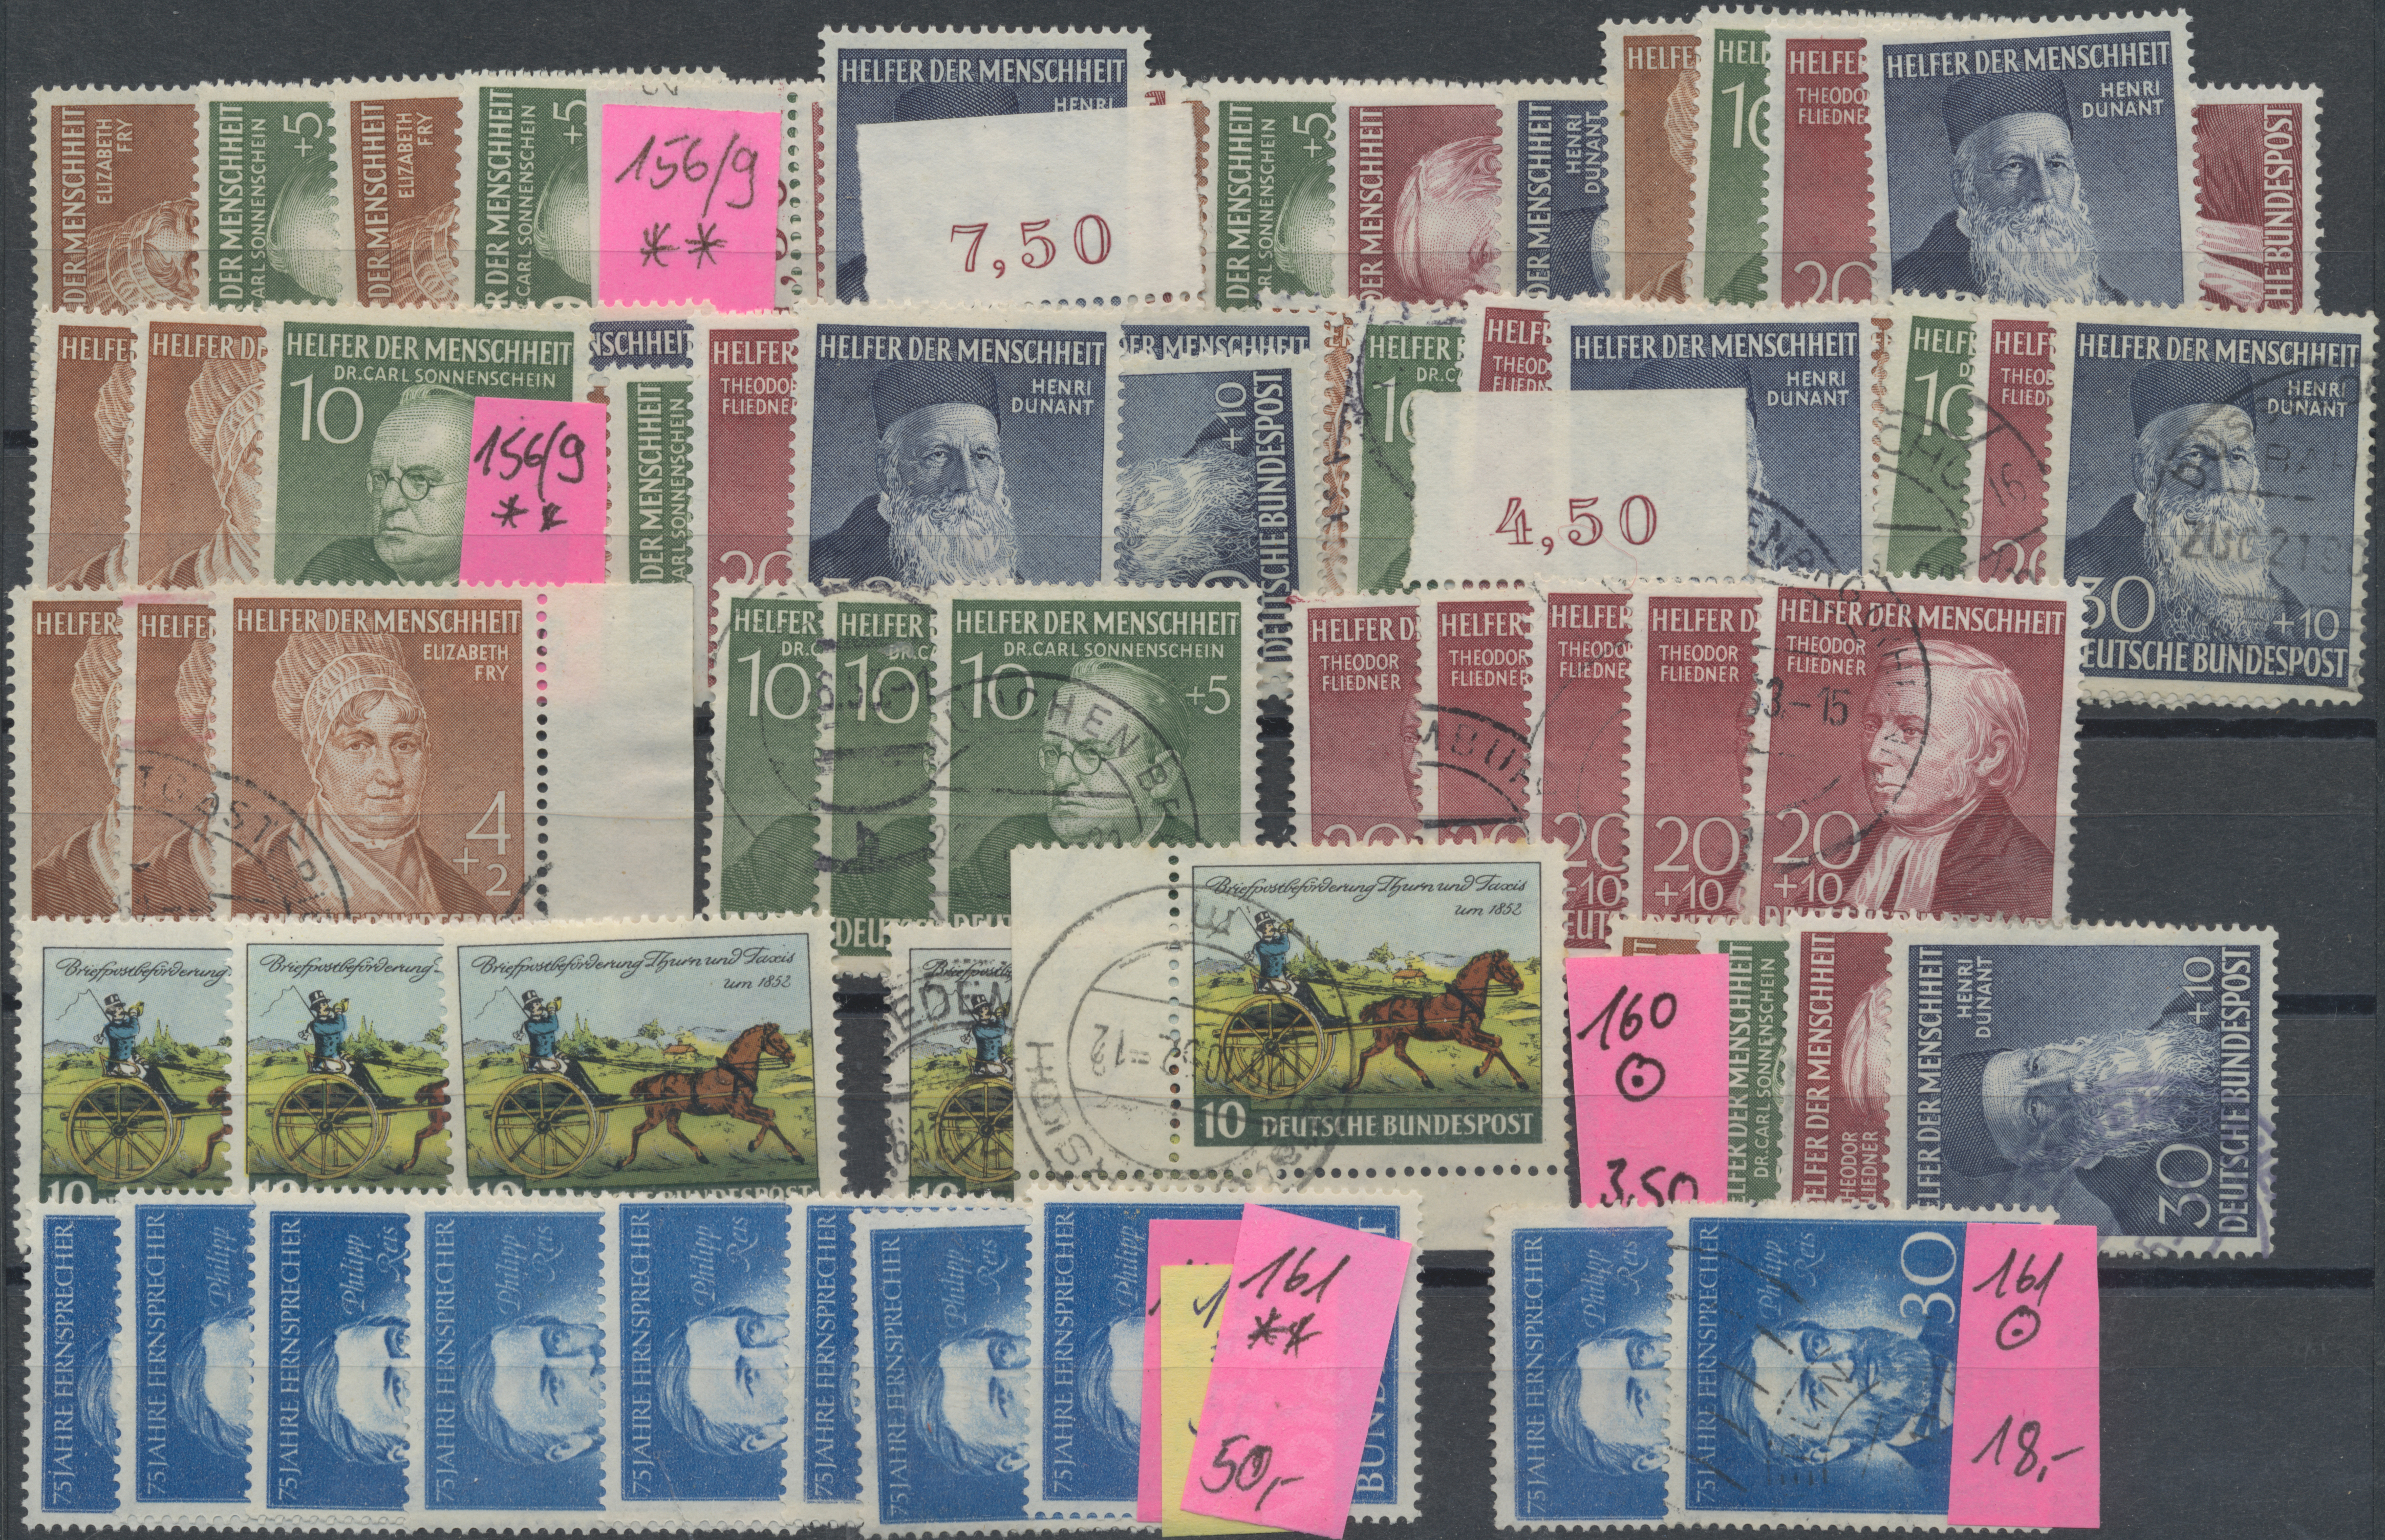 Lot 33510 - bundesrepublik deutschland  -  Auktionshaus Christoph Gärtner GmbH & Co. KG Sale #45- Collections Germany